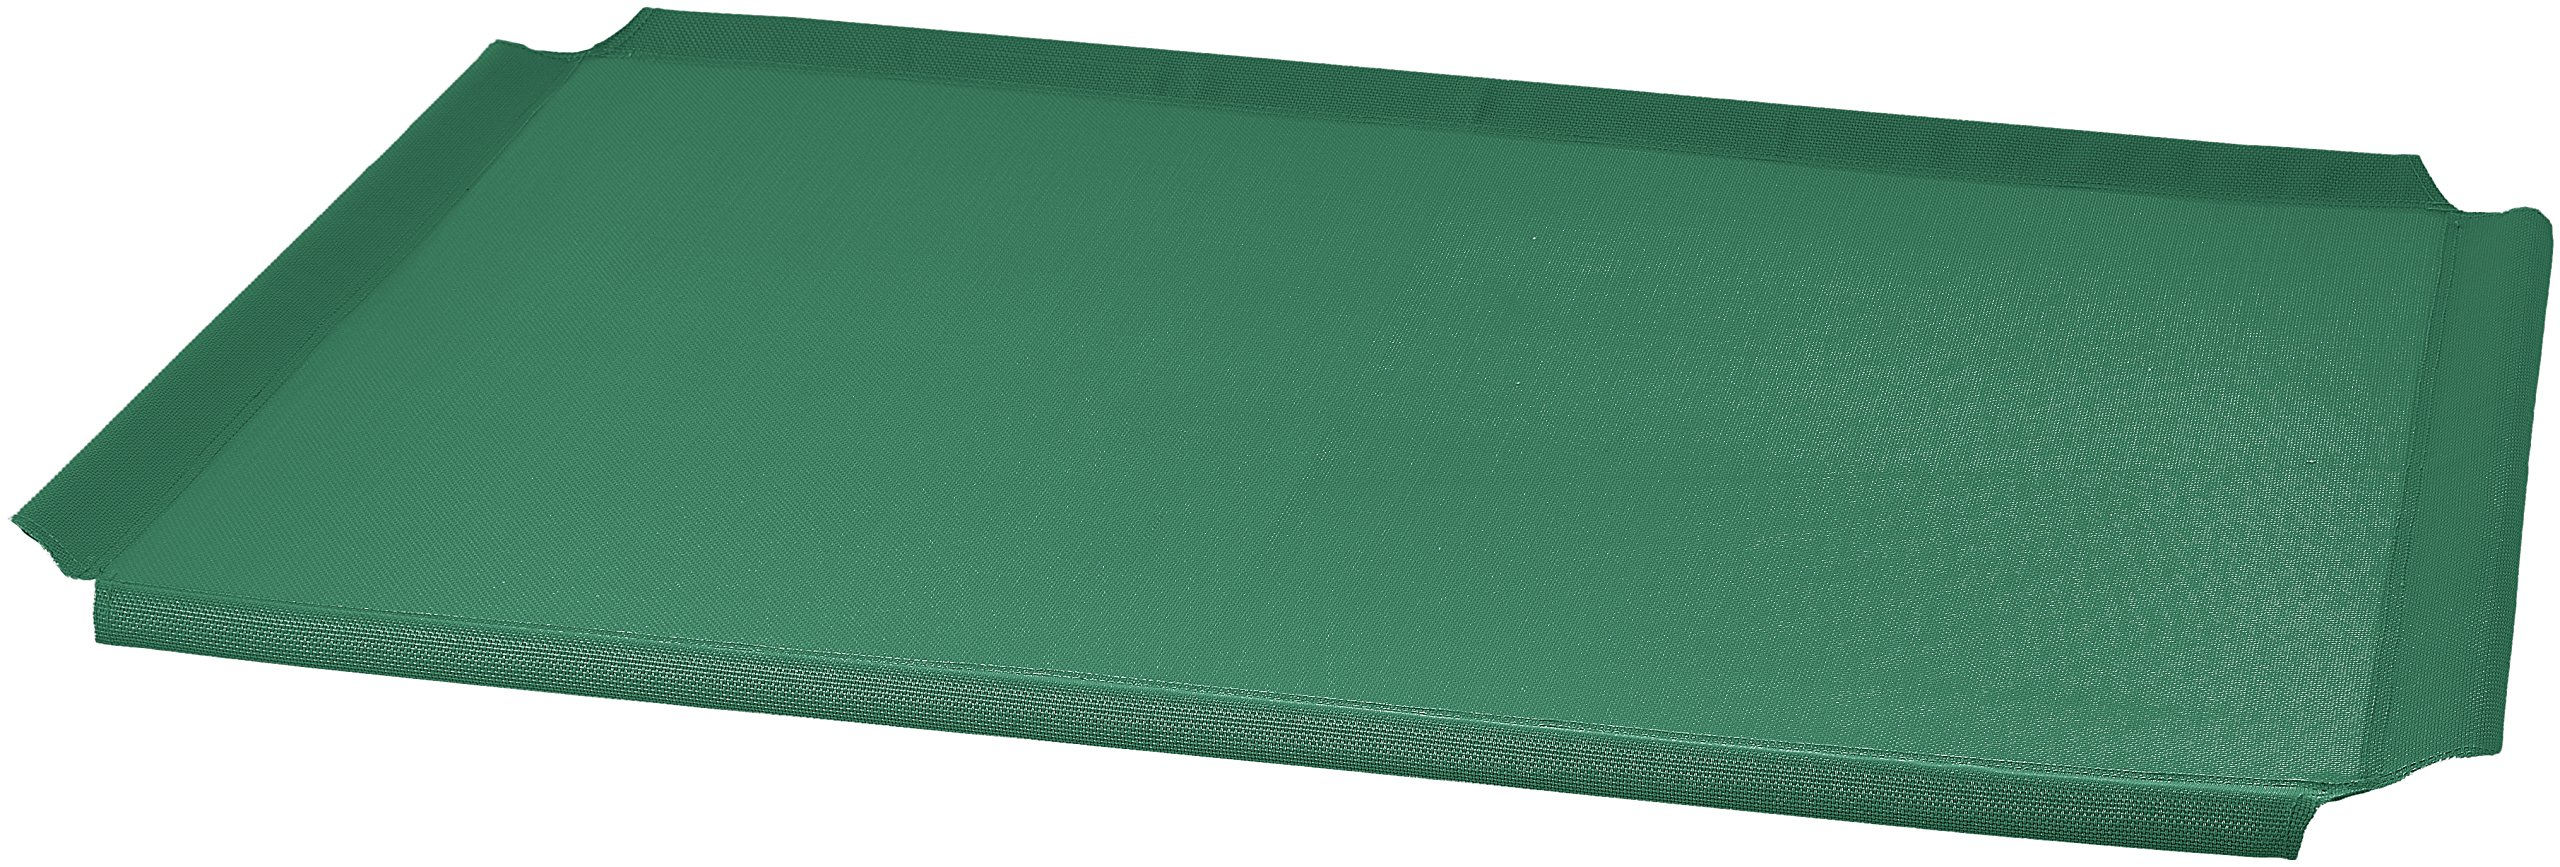 AmazonBasics Elevated Cooling Pet Bed Replacement Cover, L, Green